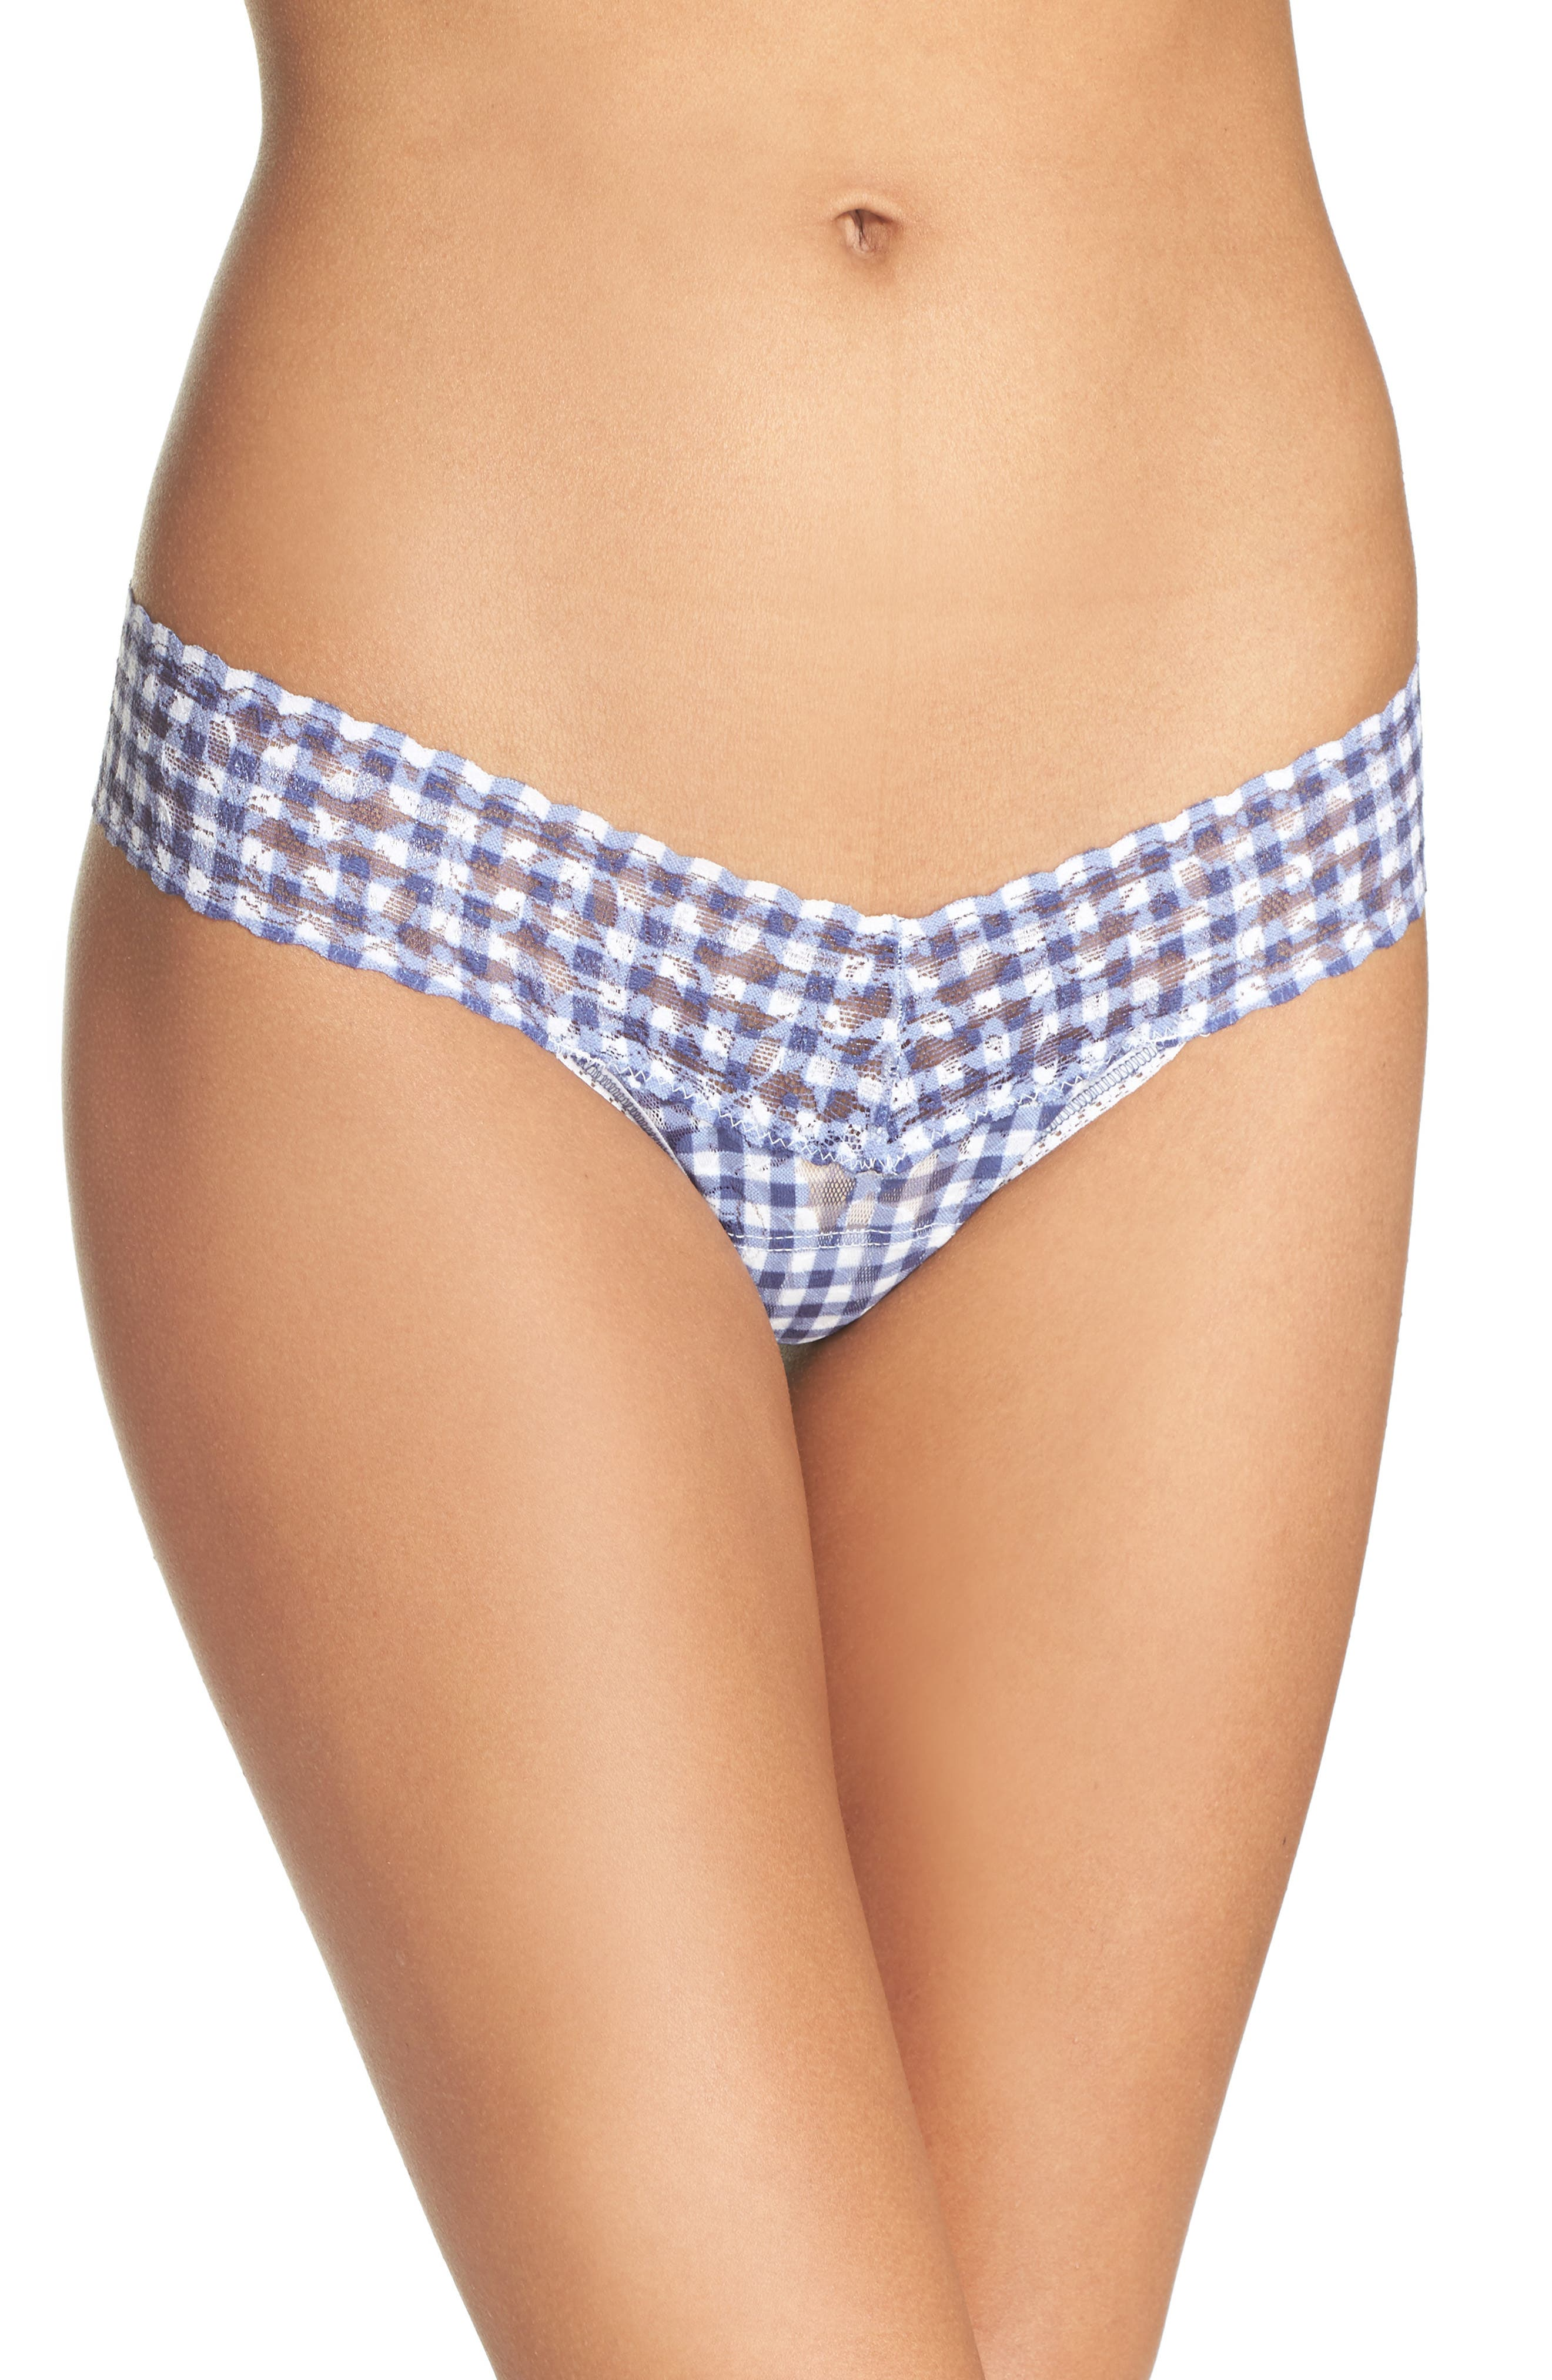 Hanky Panky Check Please Low Rise Thong